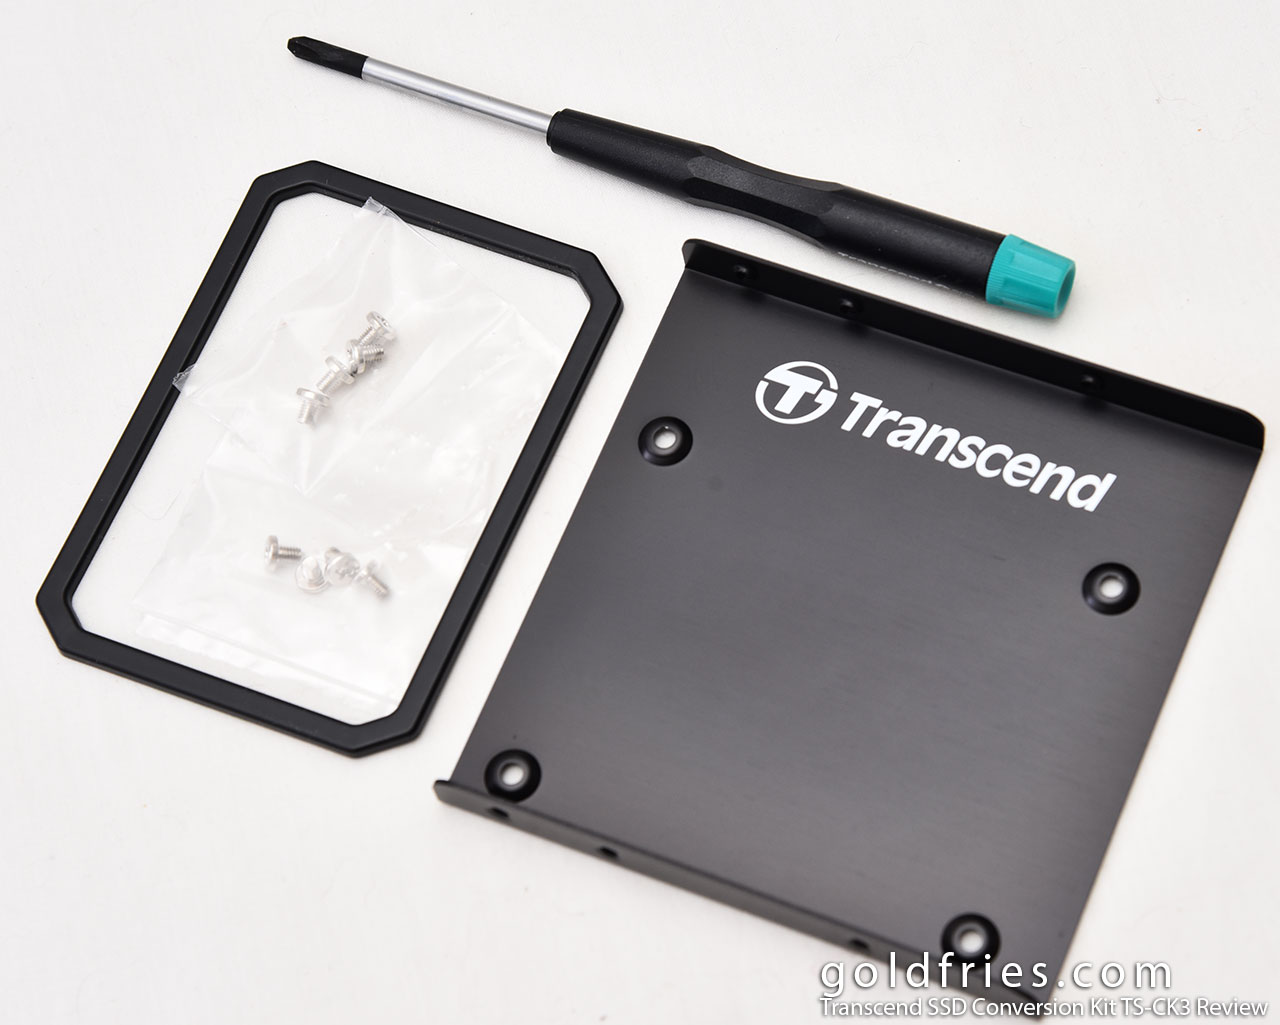 Transcend SSD Conversion Kit TS-CK3 Review